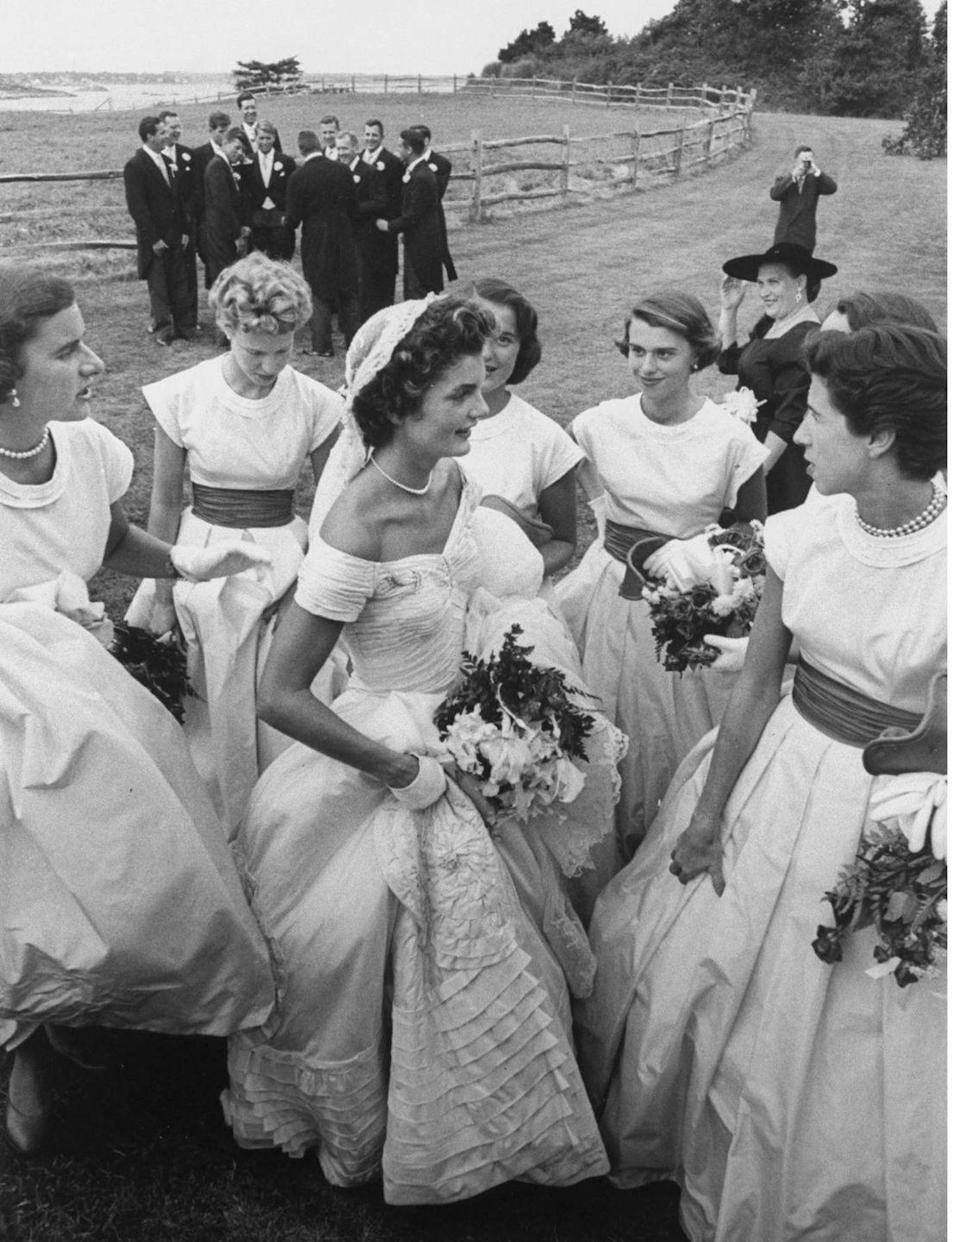 <p>Jackie's bridal party included her sister, Lee, stepsister Nina Auchincloss, John's sister Jean, and his sister-in-law Ethel. There were 10 bridesmaids in total, and they wore pink taffeta.</p>